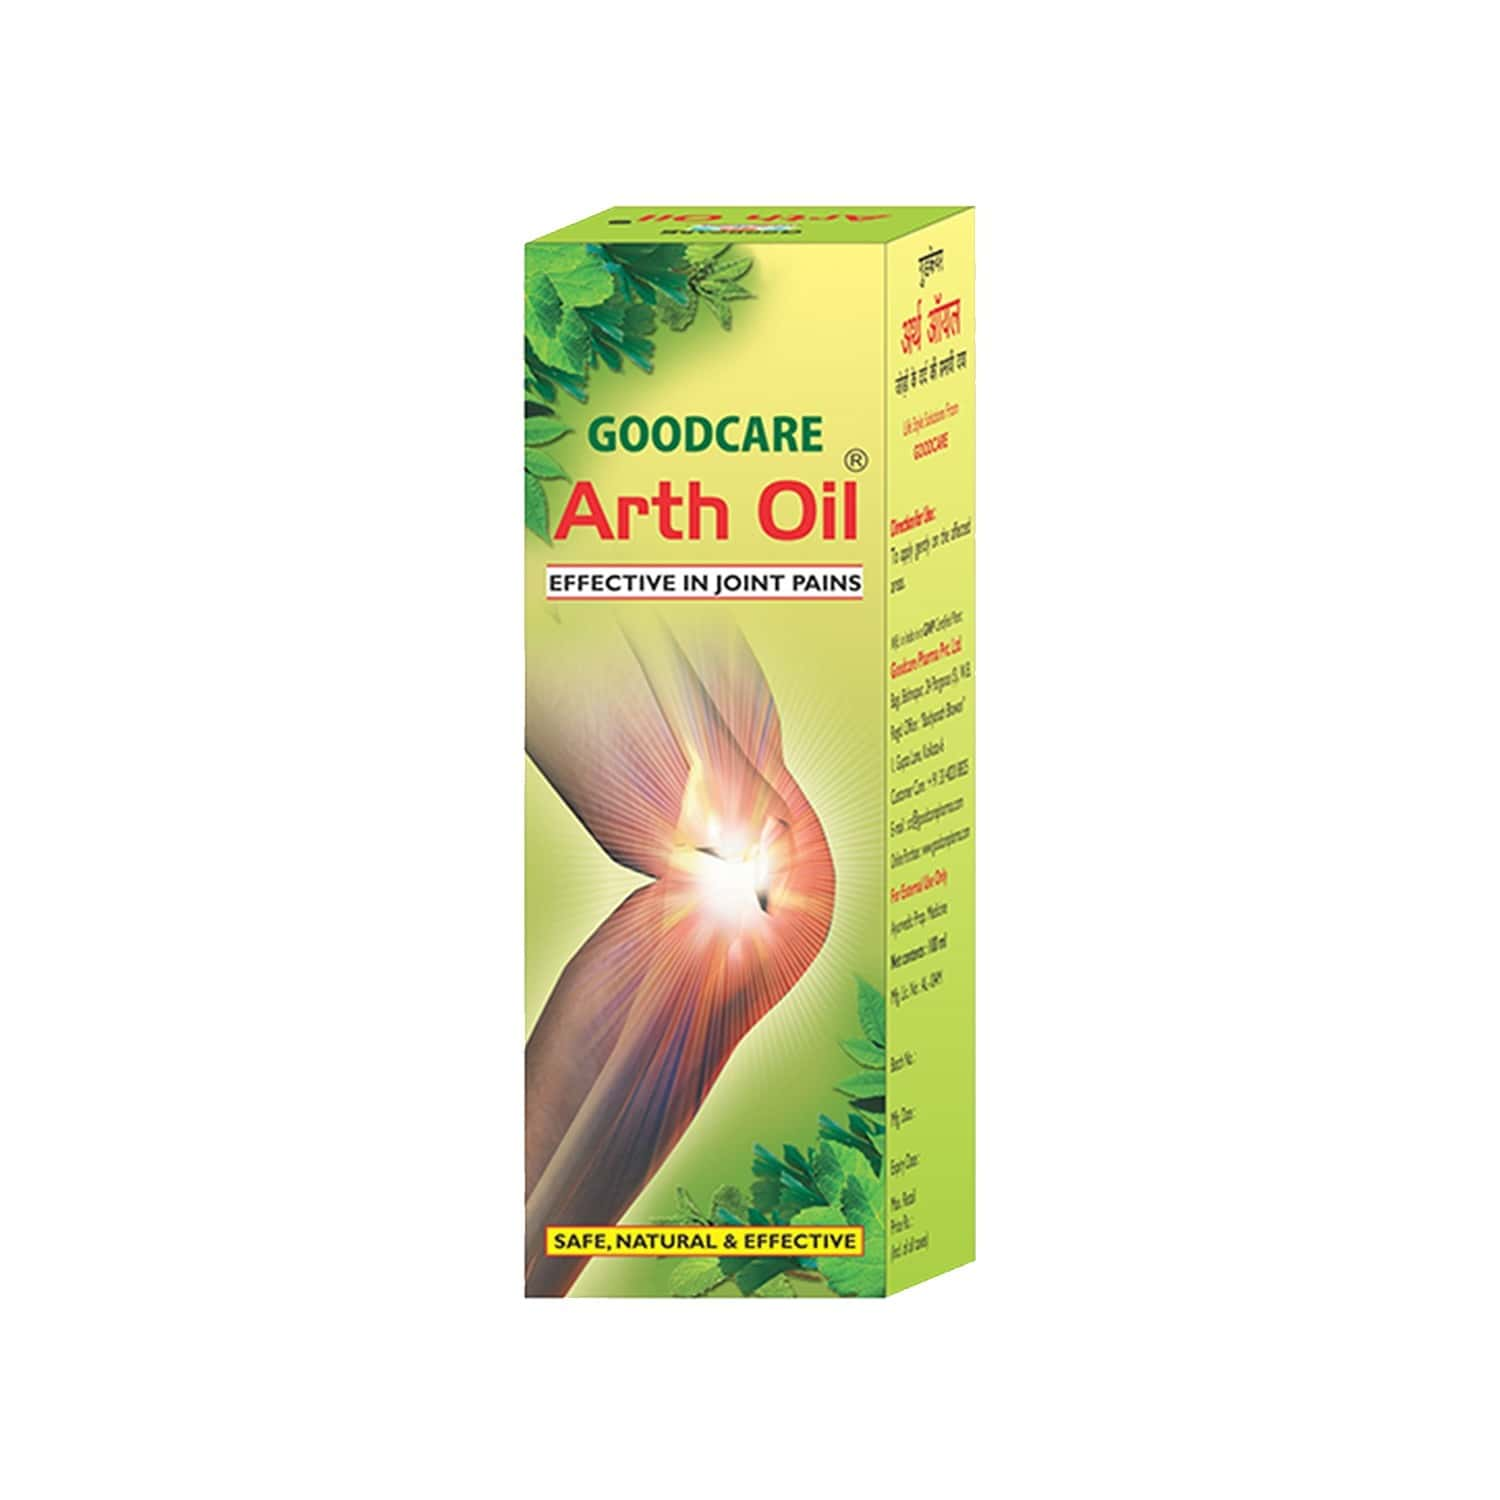 Goodcare Arth Oil - 100ml